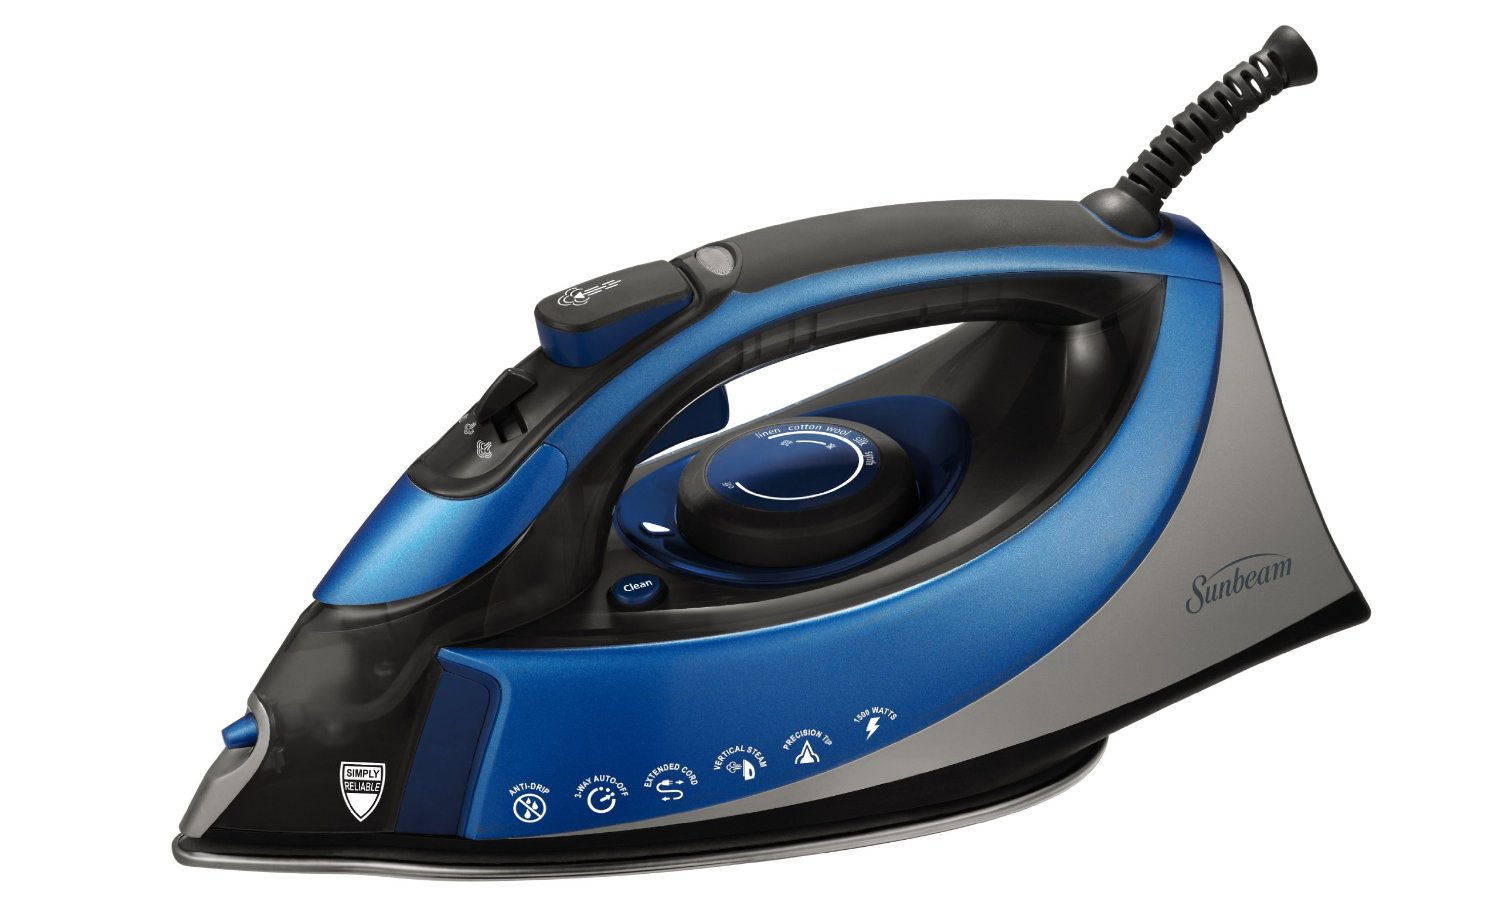 best steam iron top 10 best steam irons reviews 2017 for home clothes 28433